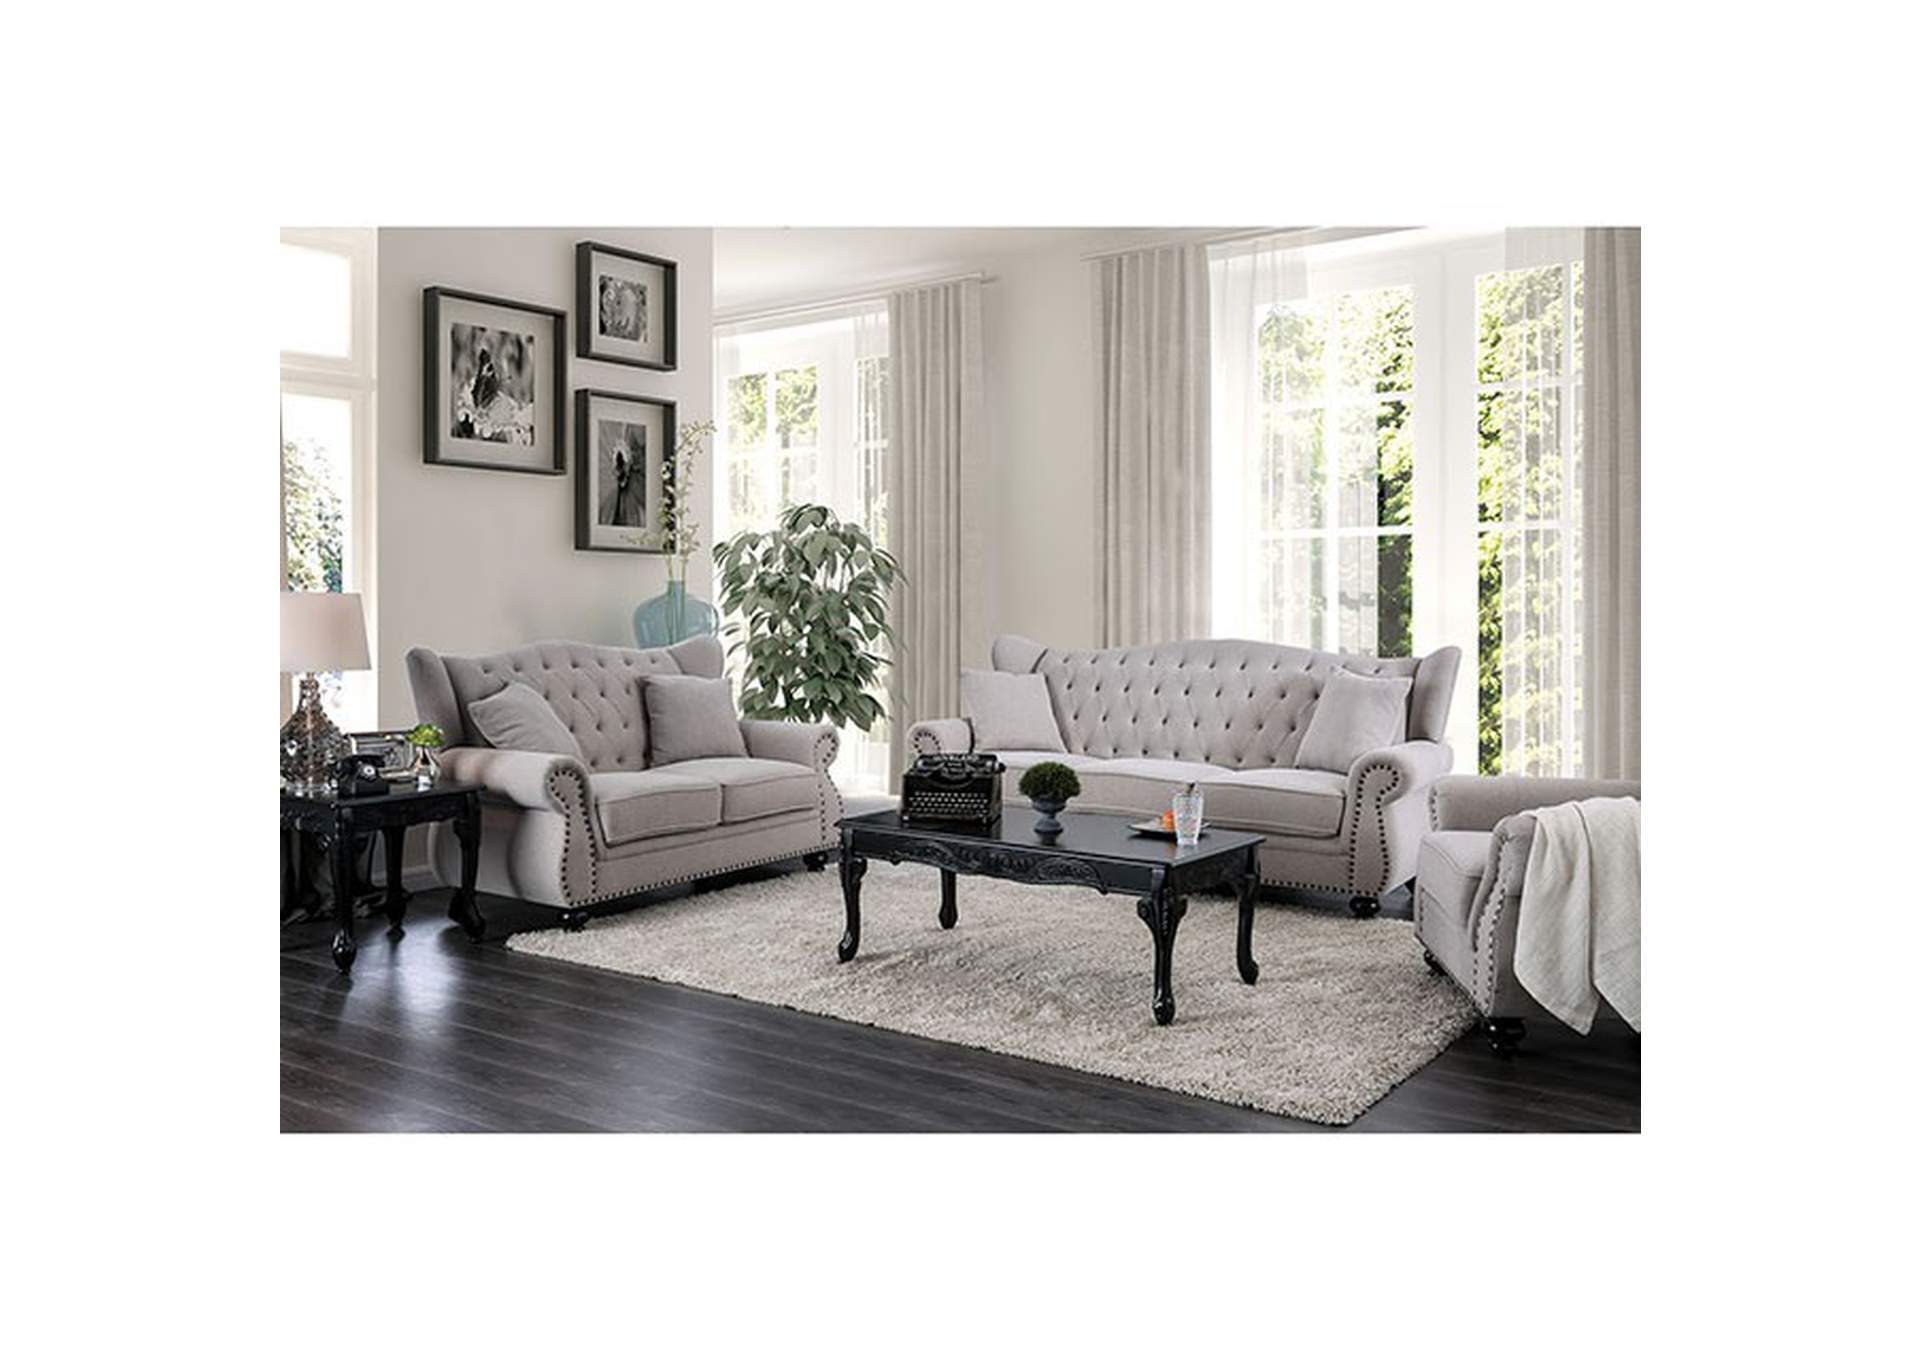 Ewloe Gray Stationary Sofa,Furniture of America TX